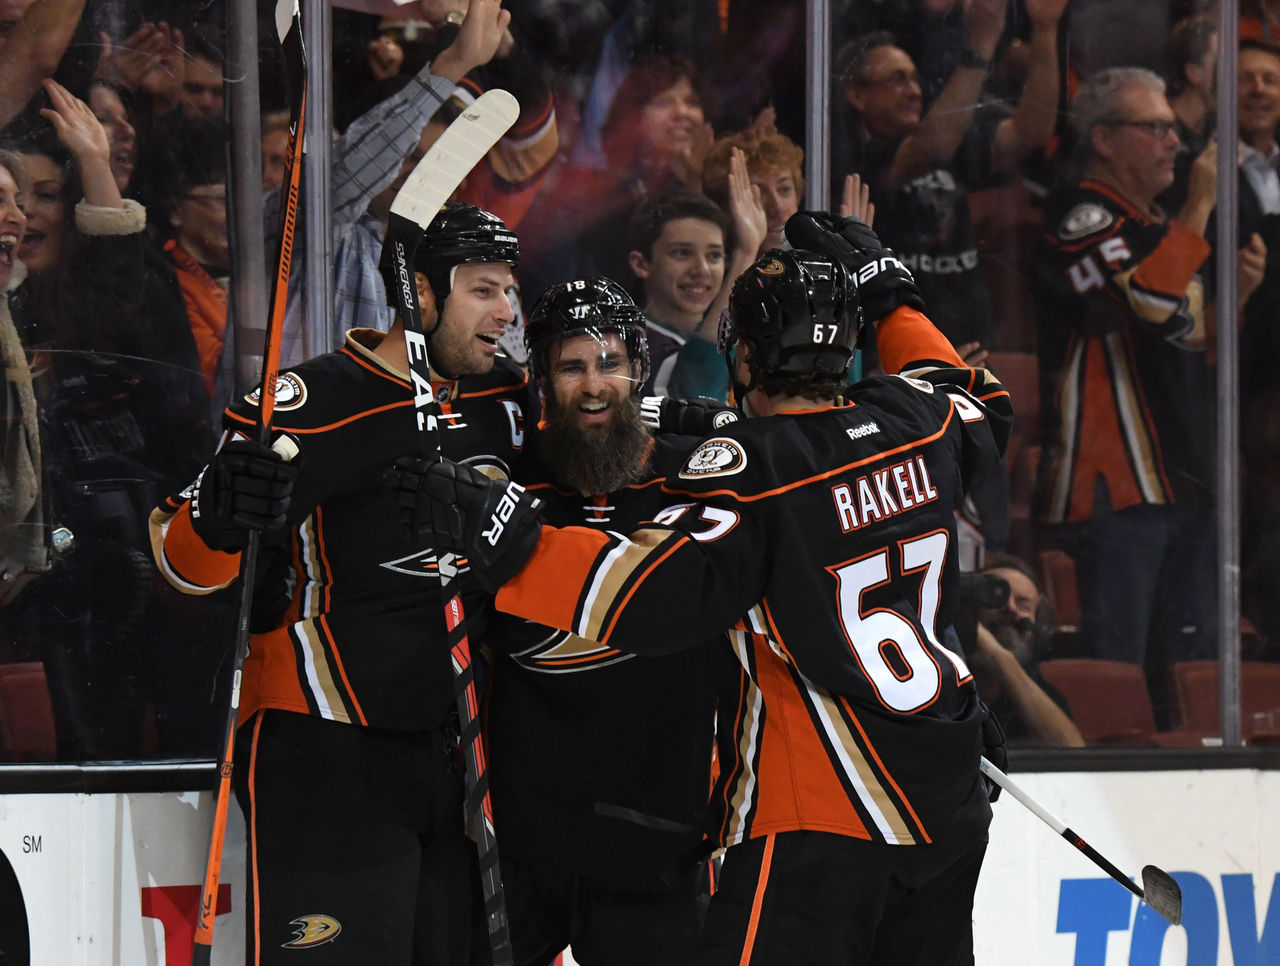 Cropped 2017 03 23t030702z 1938663974 nocid rtrmadp 3 nhl edmonton oilers at anaheim ducks